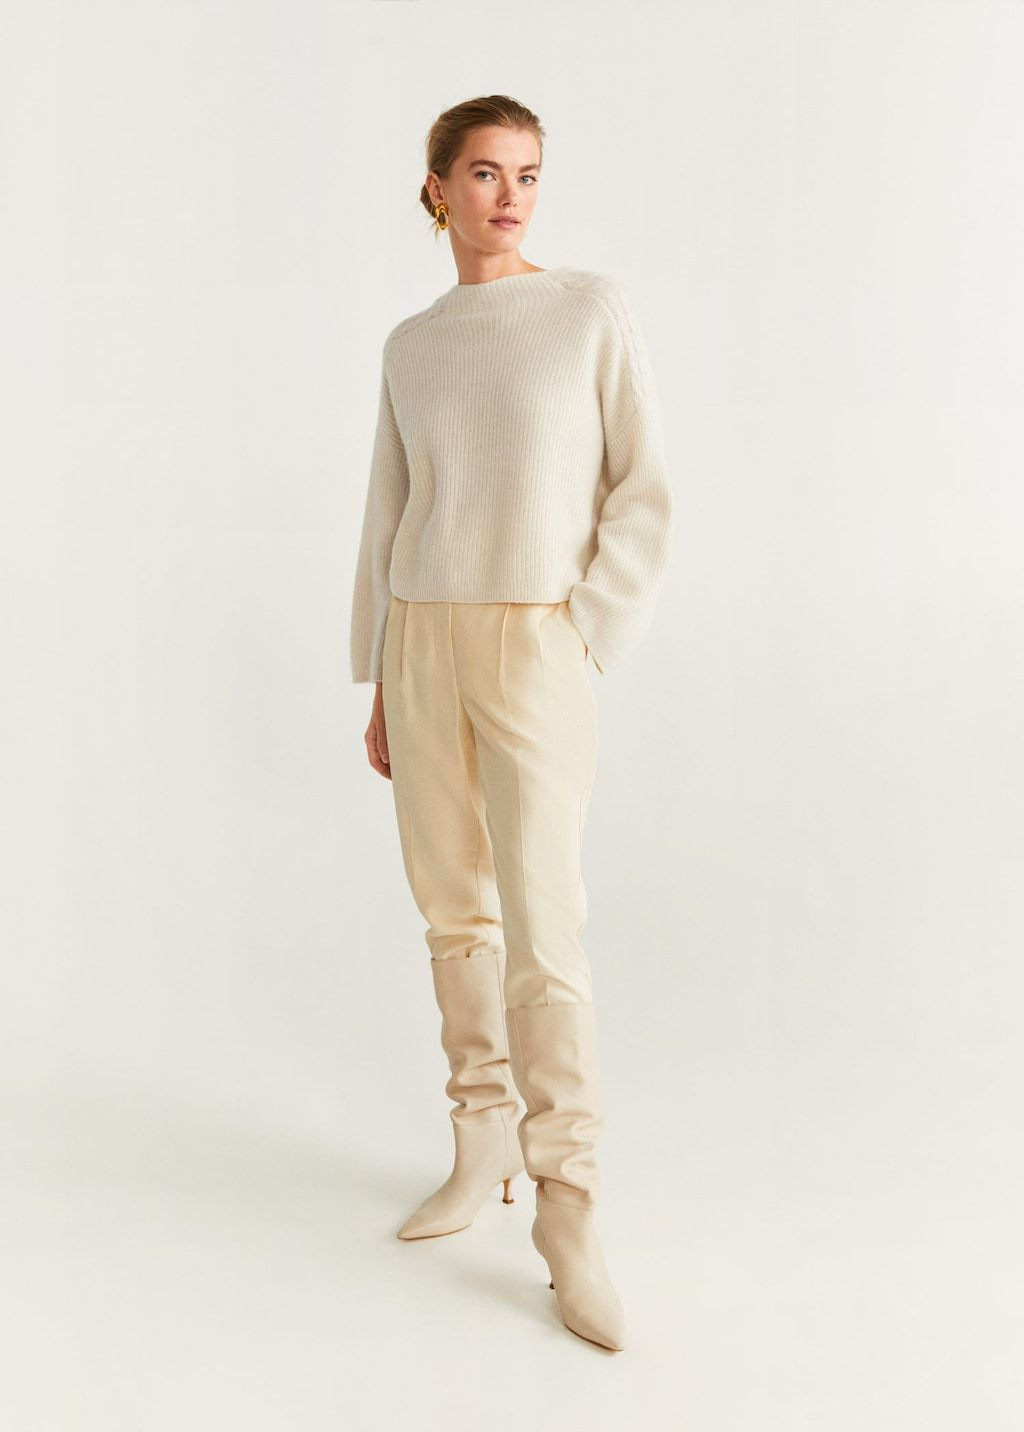 Tricolor ribbed sweater Women (With images) | Cashmere